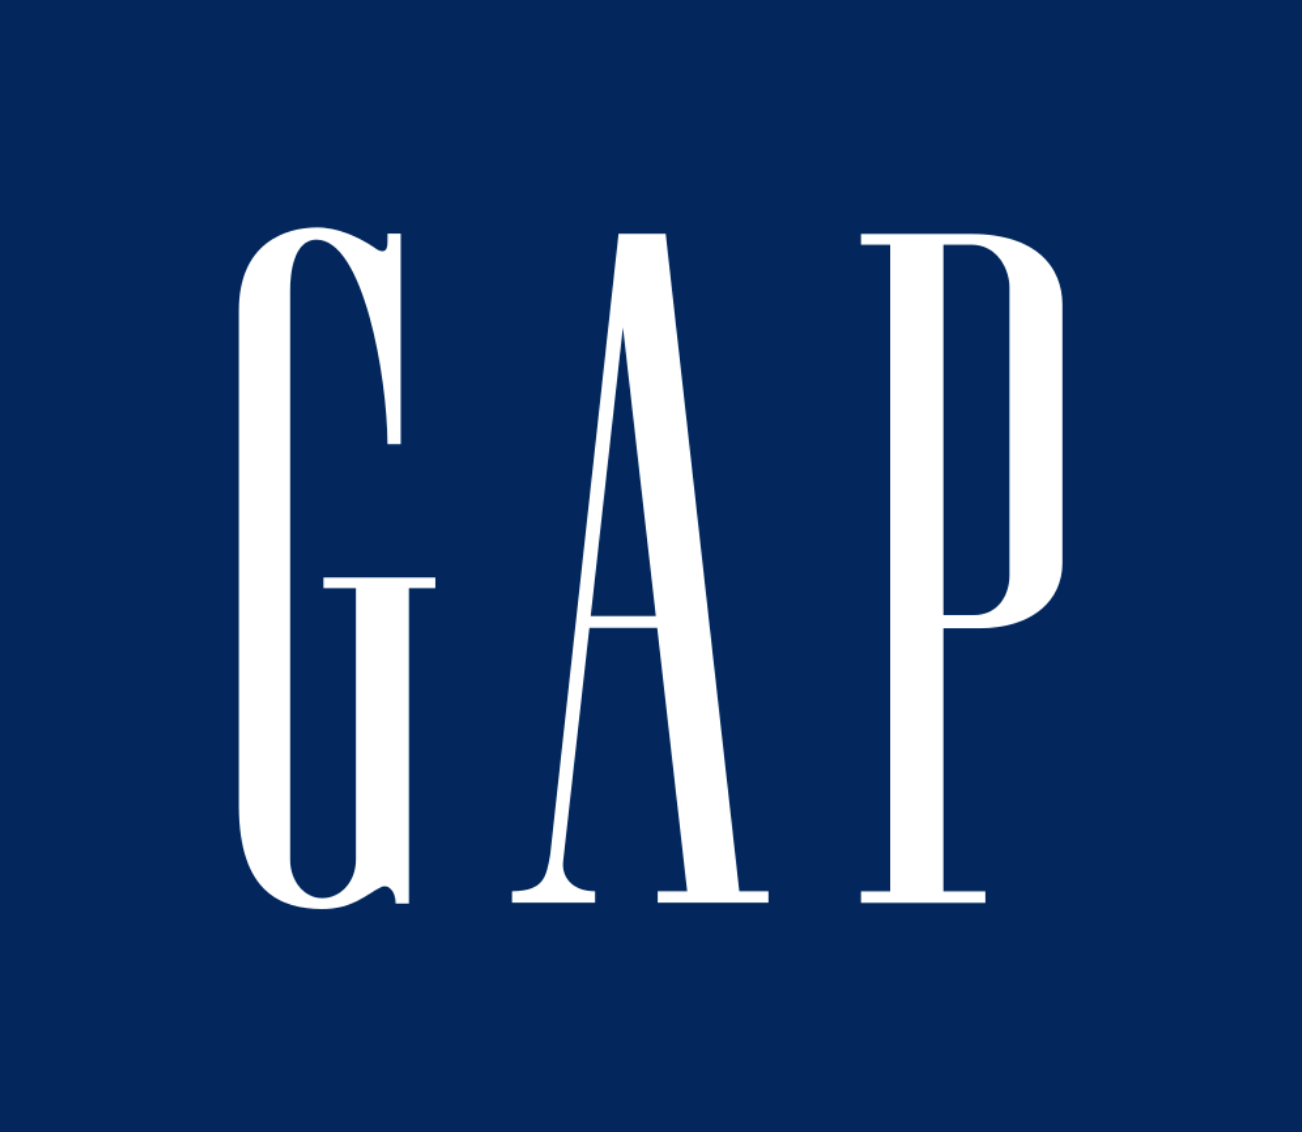 Gap Military Veteran Discounts